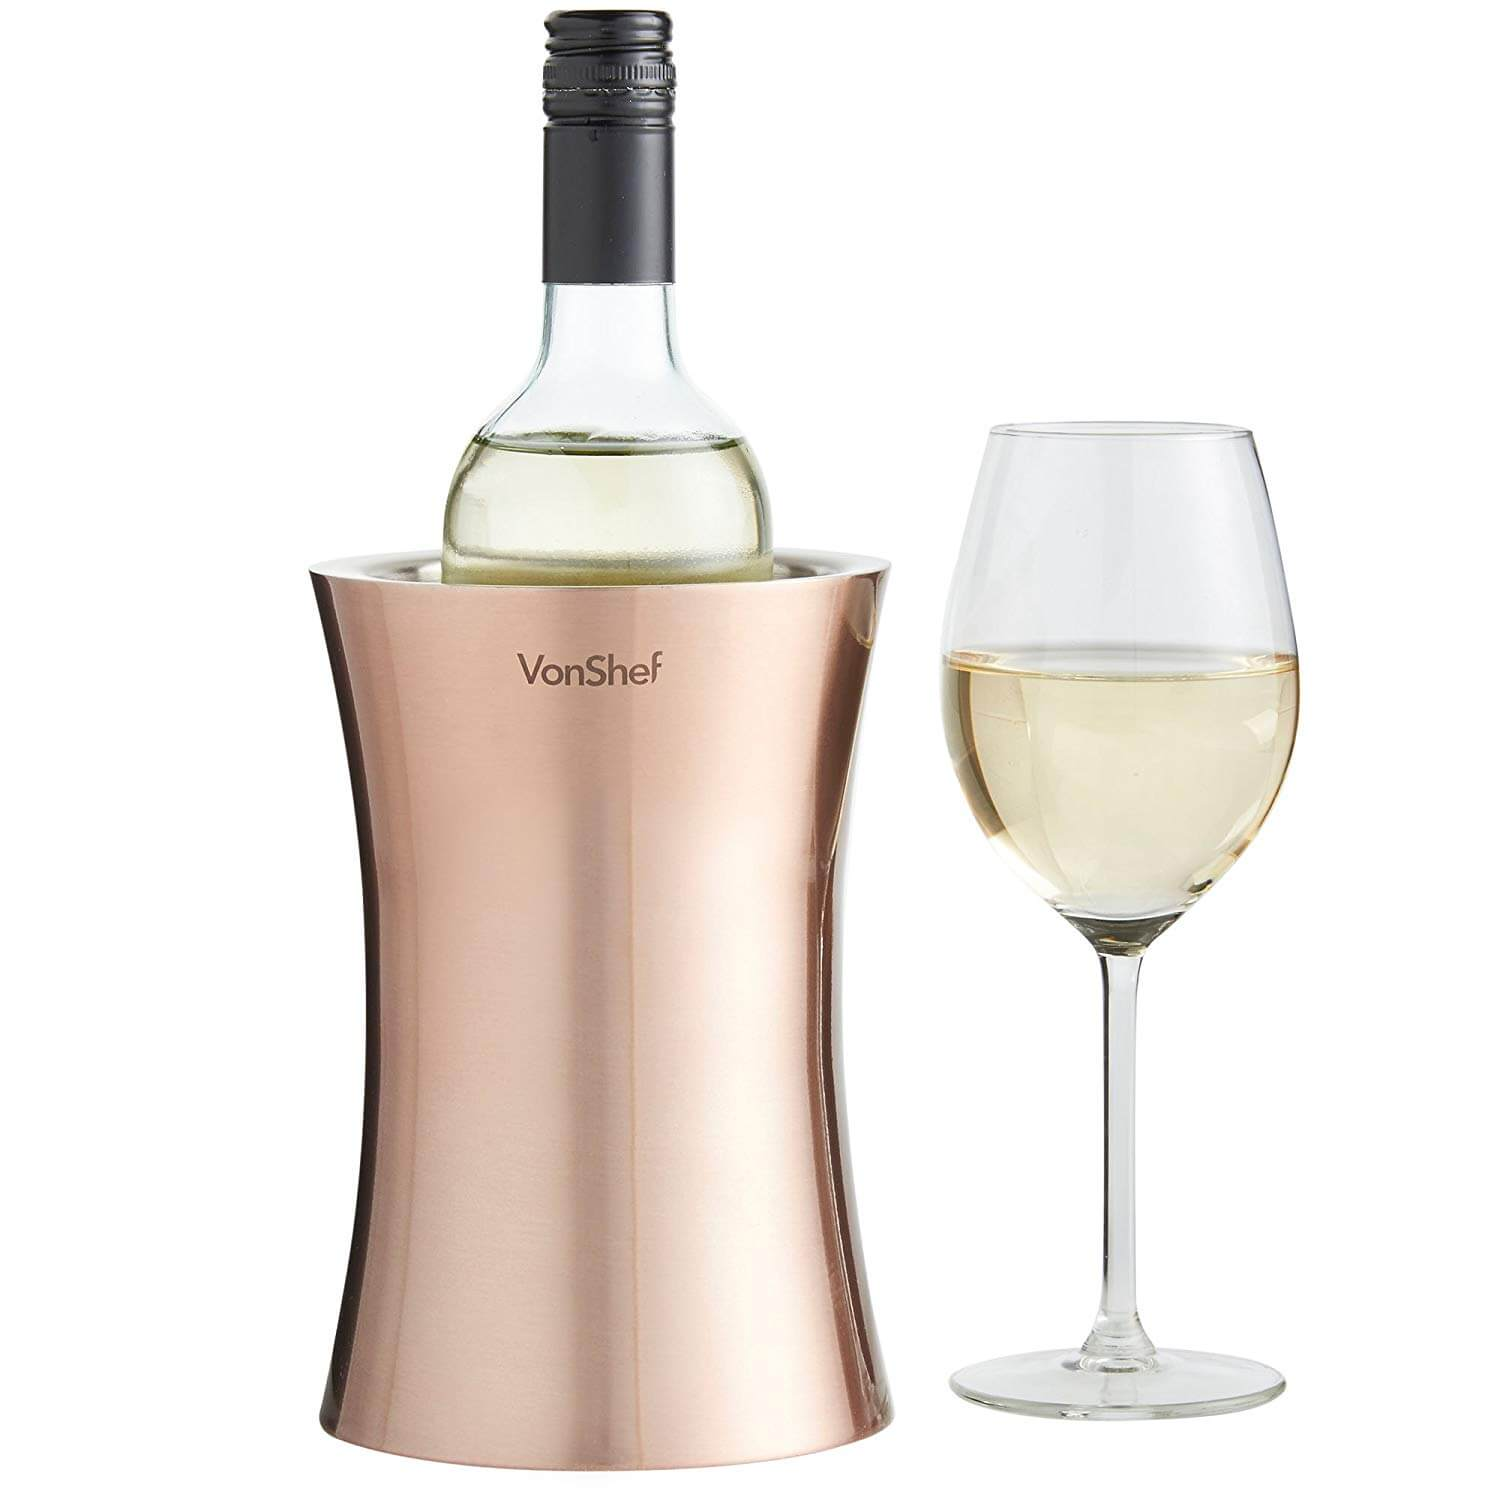 A bottle of white wine in the VonShef Copper Wine Bottle Chiller.